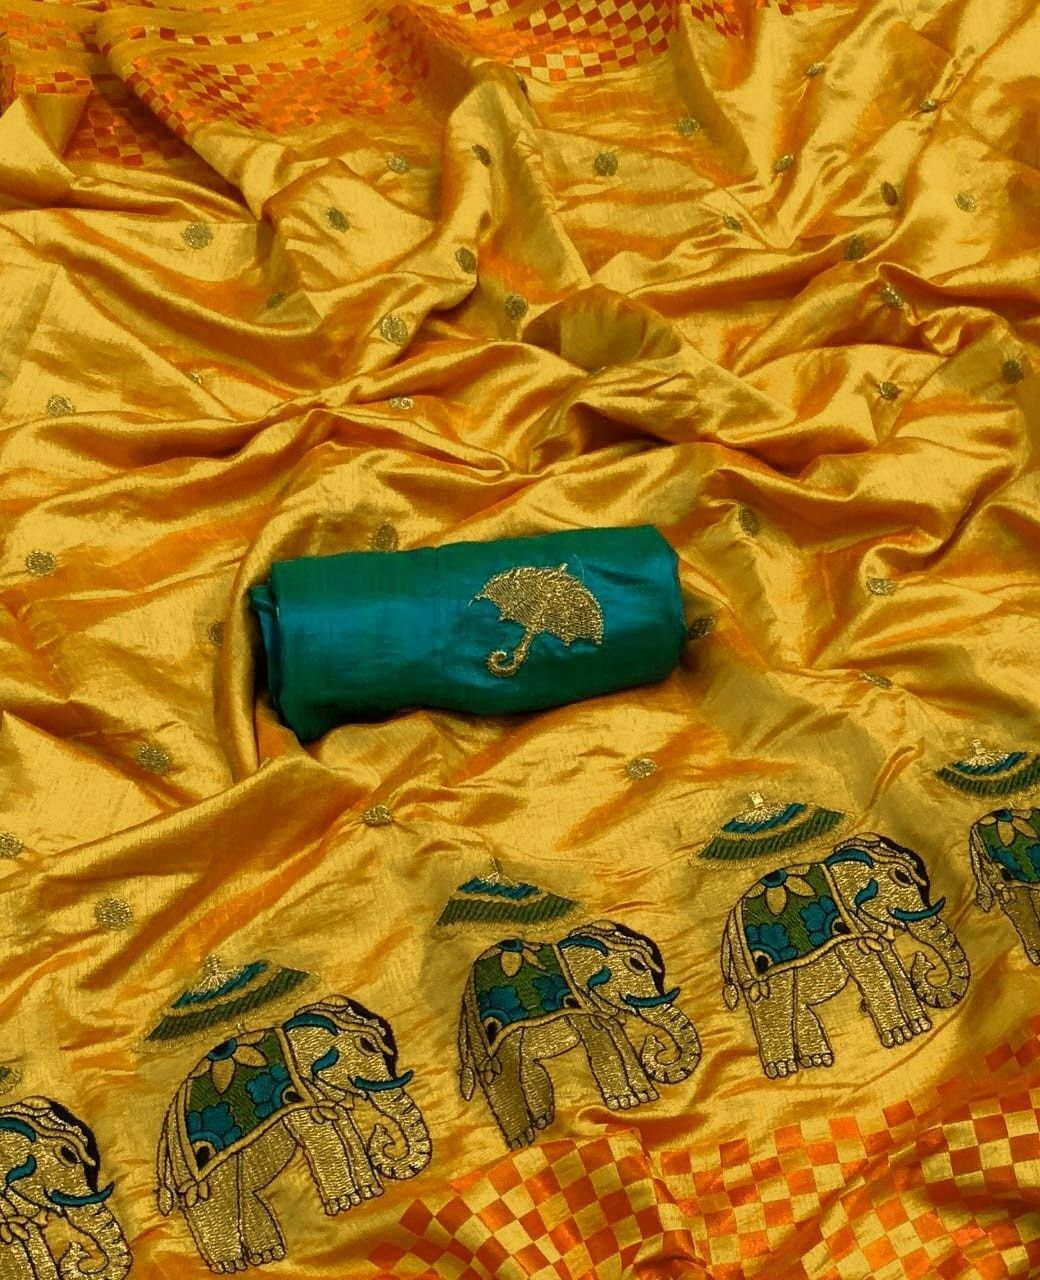 2a92eeb029 Yellow Color Sana silk Saree With Cheks pattern And Elephant Figer  Embroidery.. BLOUSE Banglori cotton and Pallu with Fancy Zalar